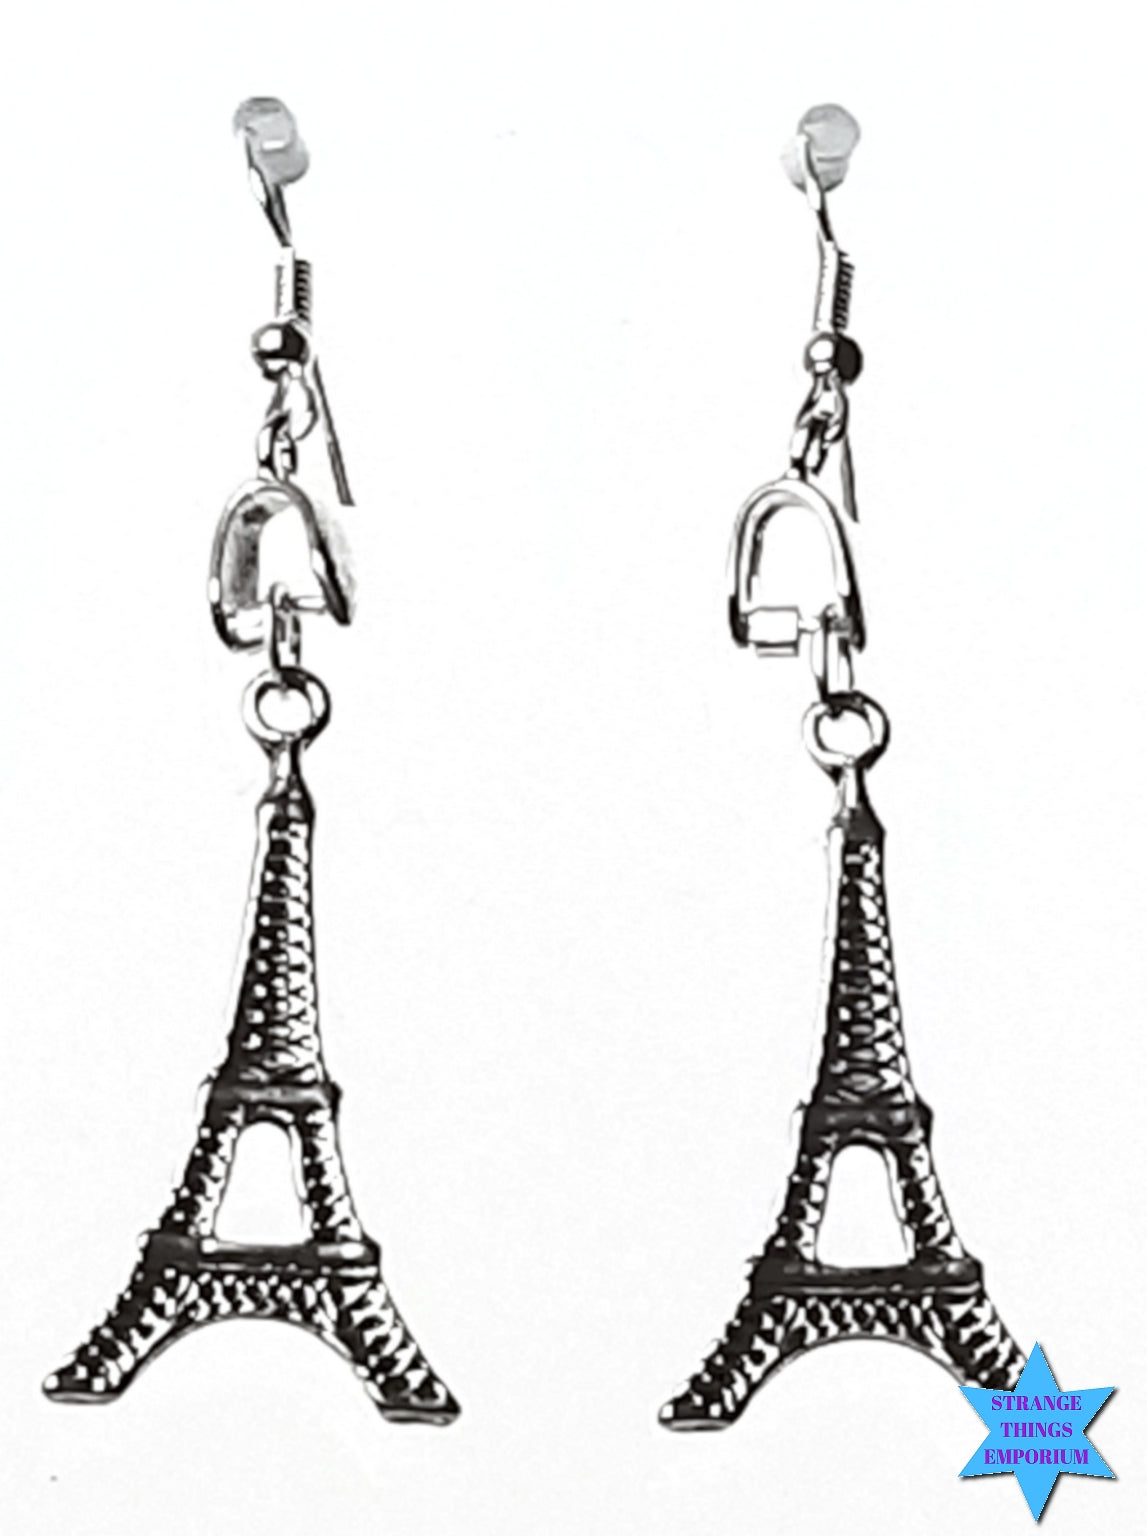 Eiffel Tower - Strange Things Emporium